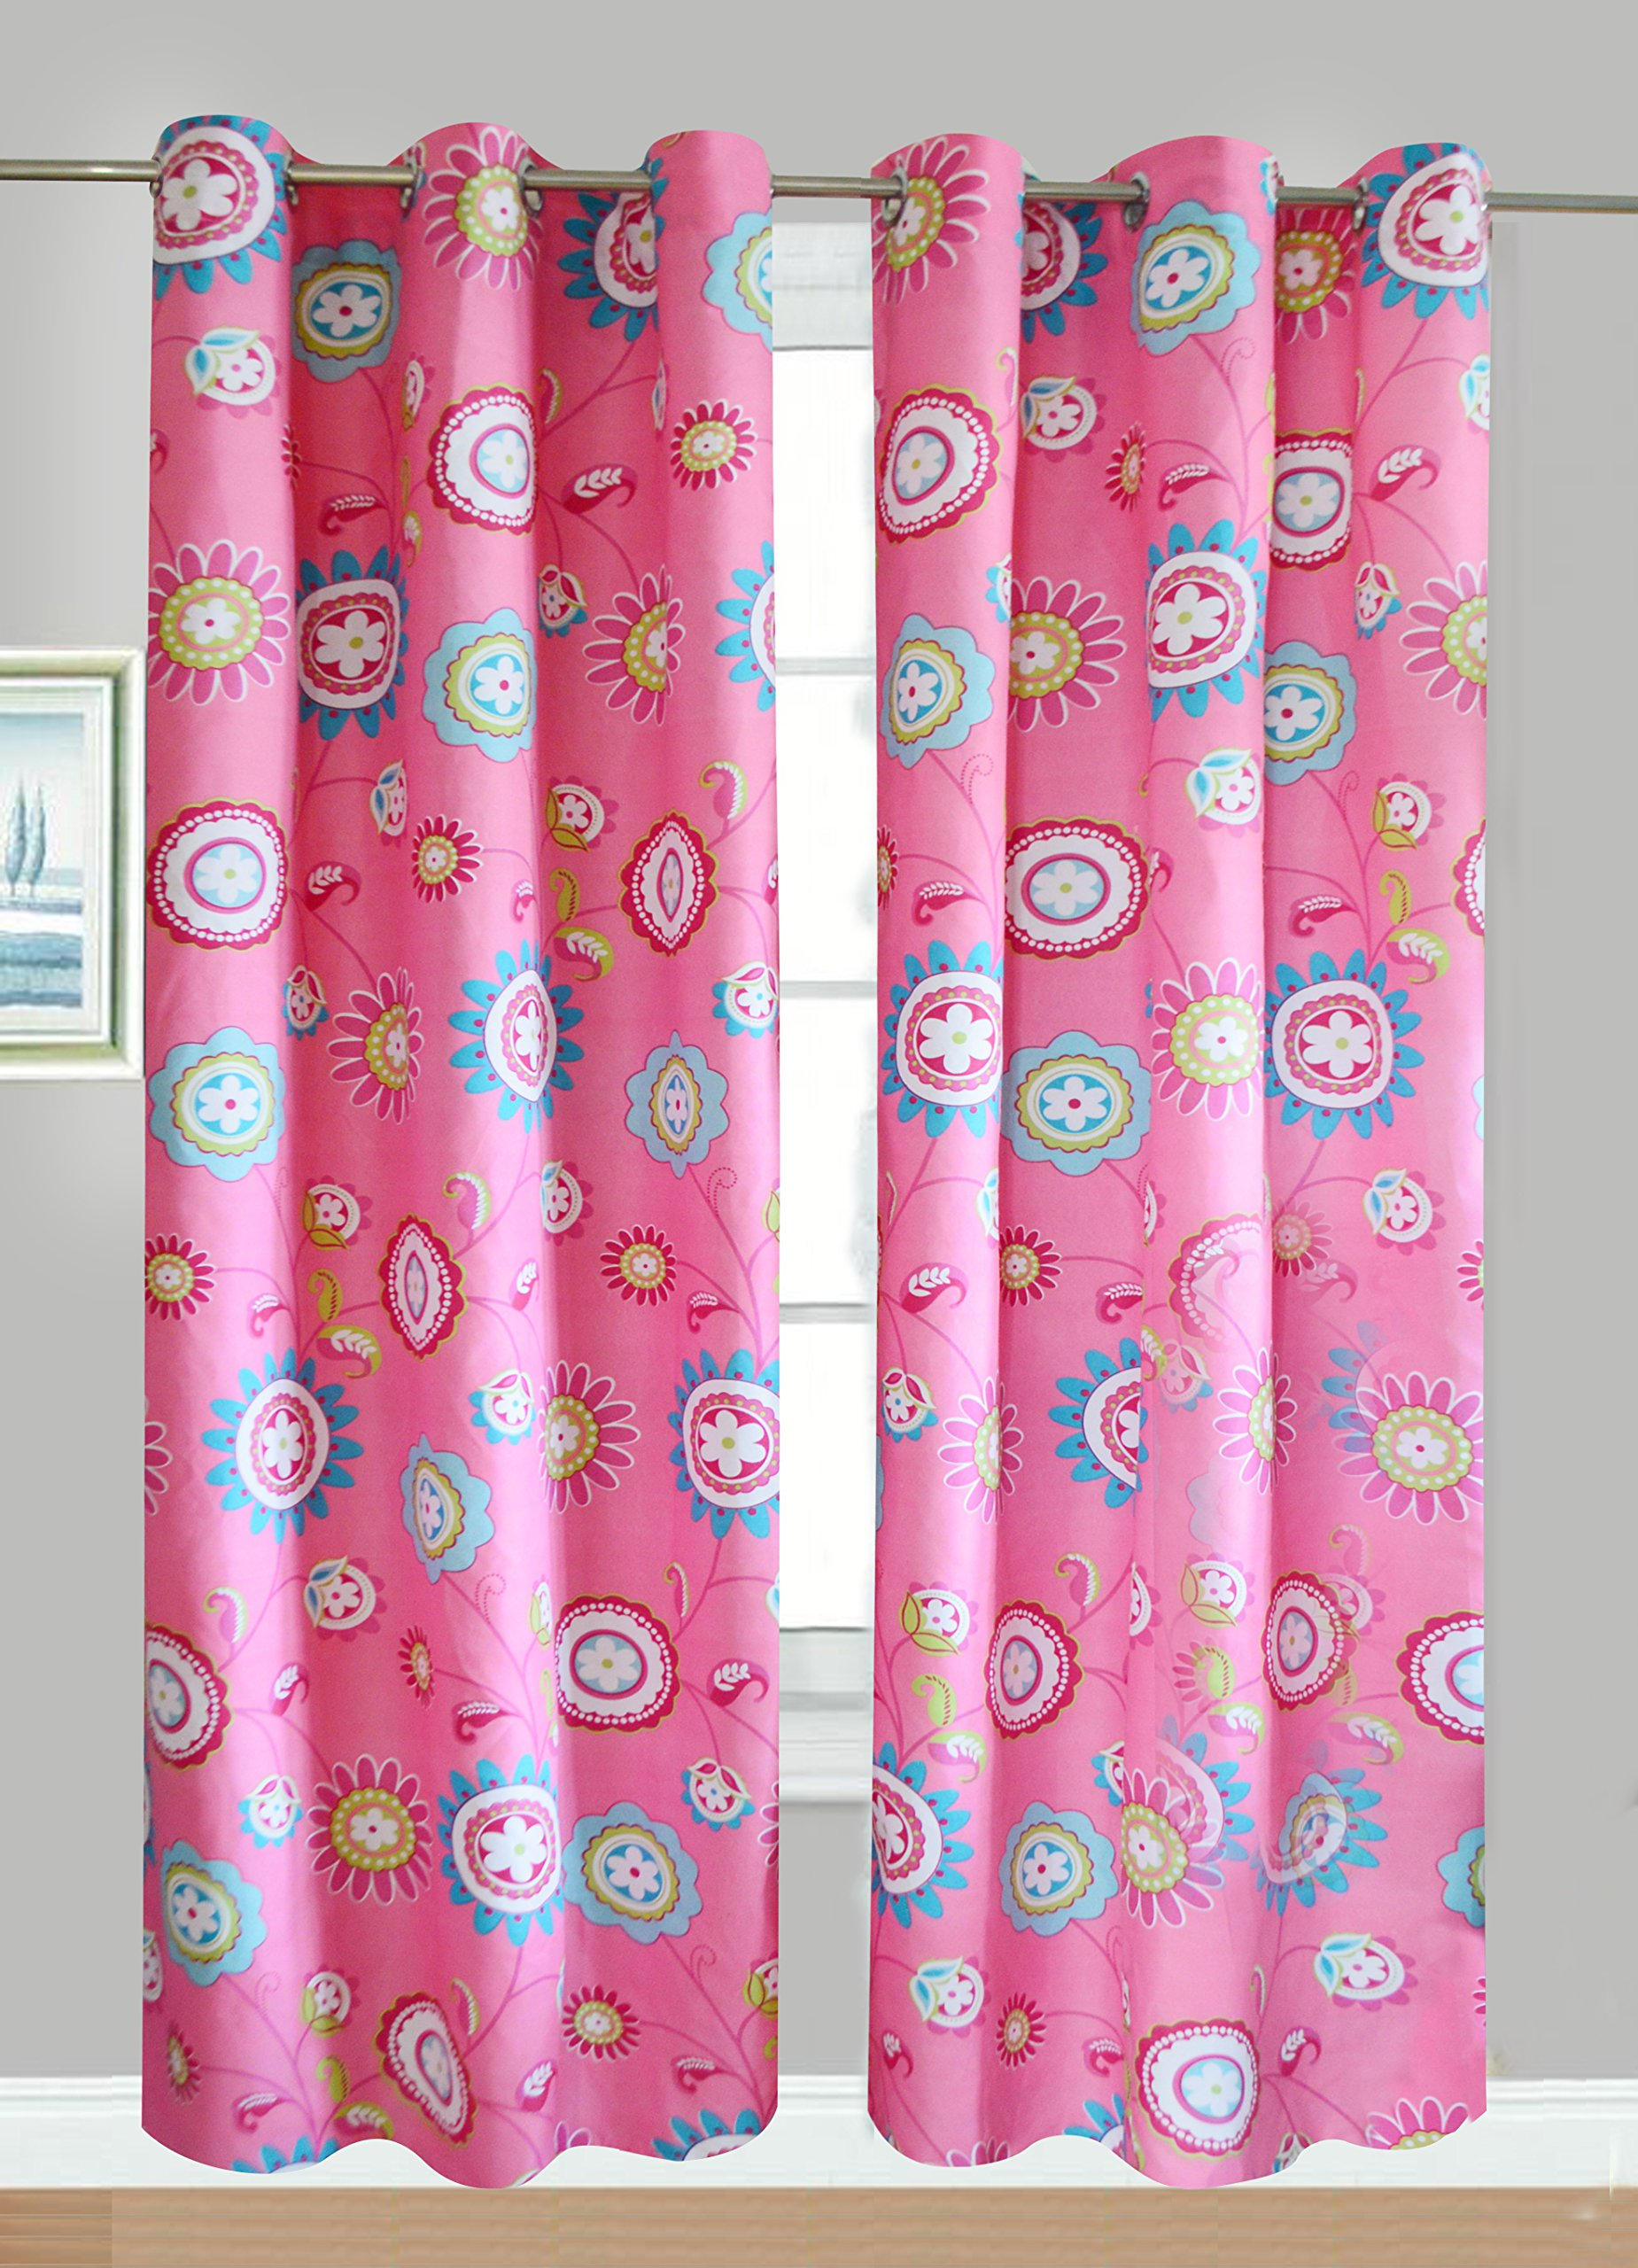 Fancy Linen Collection 2 Panel Flower Pink Curtain Set With grommet measures 80''x 84''